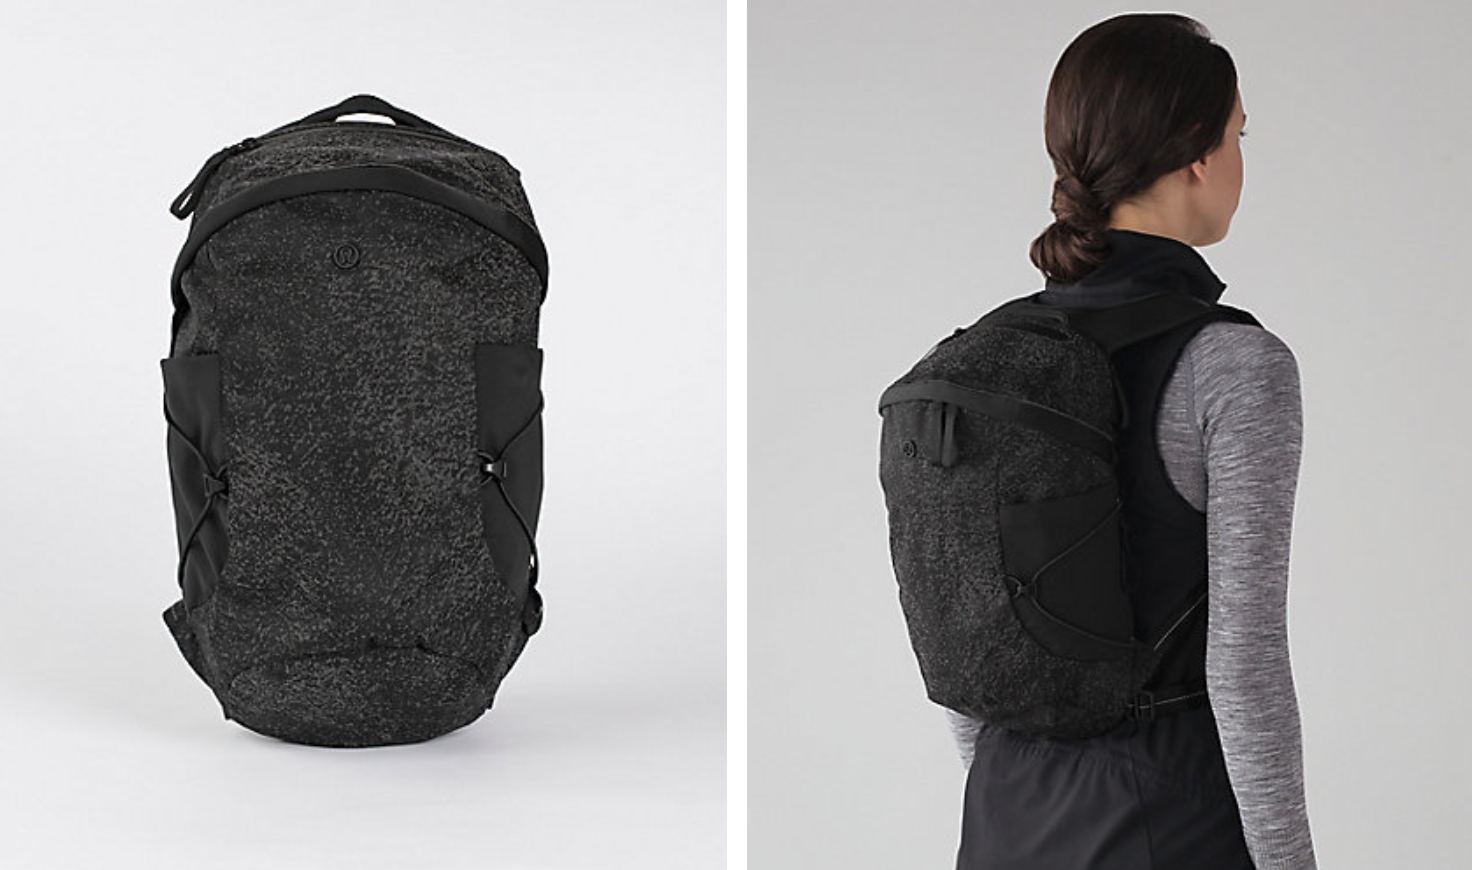 https://api.shopstyle.com/action/apiVisitRetailer?url=https%3A%2F%2Fshop.lululemon.com%2Fp%2Fbags%2FRun-All-Day-Backpack-II-Reflect%2F_%2Fprod8450241%3Frcnt%3D84%26N%3D1z13ziiZ7vf%26cnt%3D85%26color%3DLW9AH2S_028934&site=www.shopstyle.ca&pid=uid6784-25288972-7